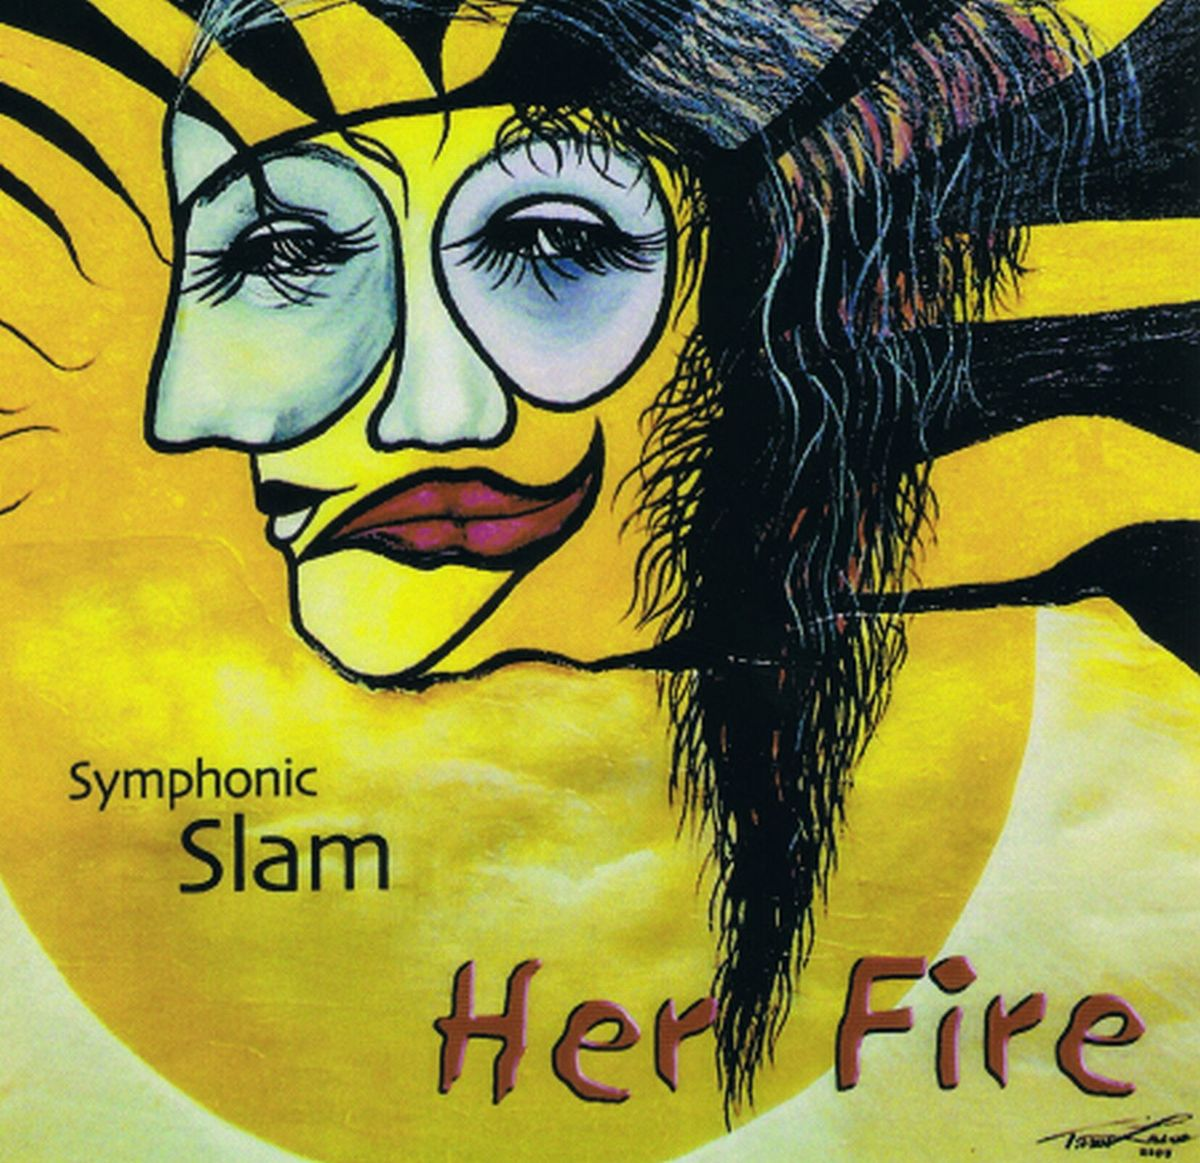 Timo Laine, Symphonic Slam, Her Fire Cover